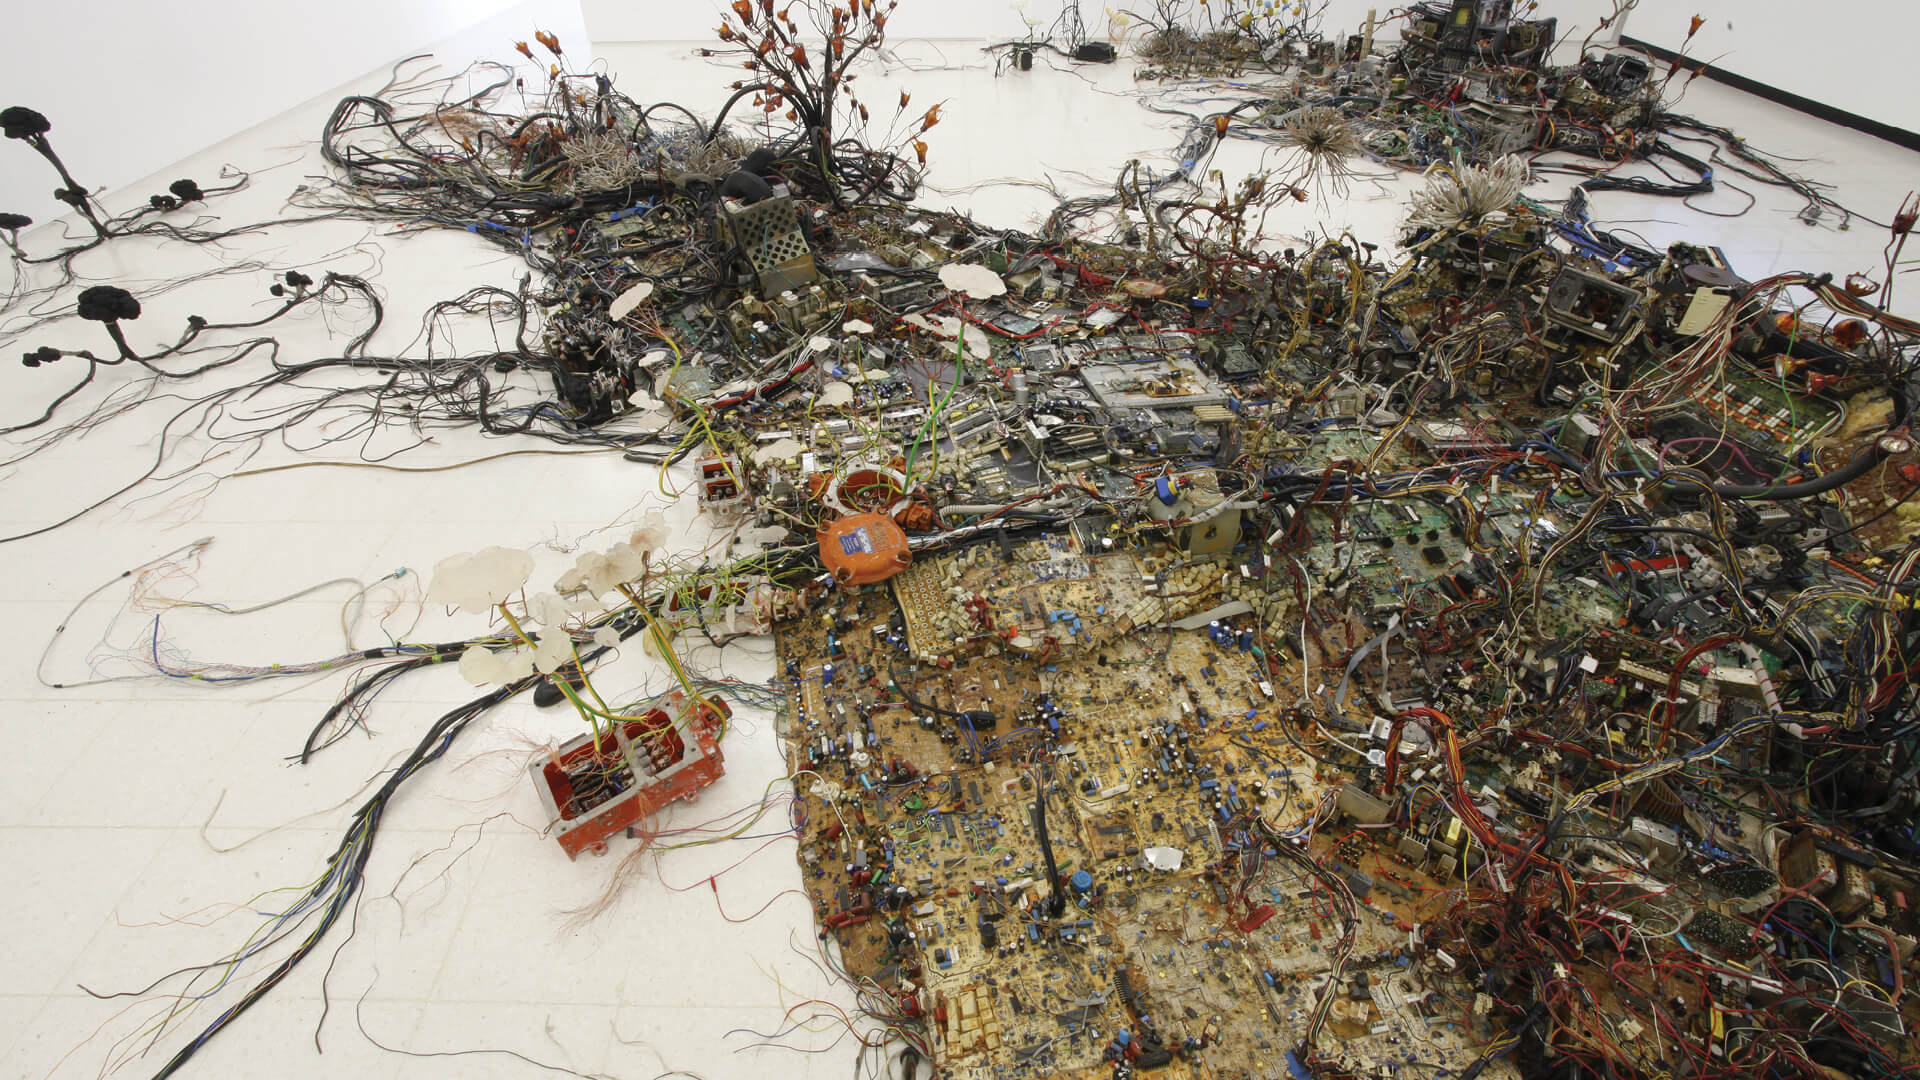 The sculptural art of Kristof Kintera gives creative expression to e-scrap